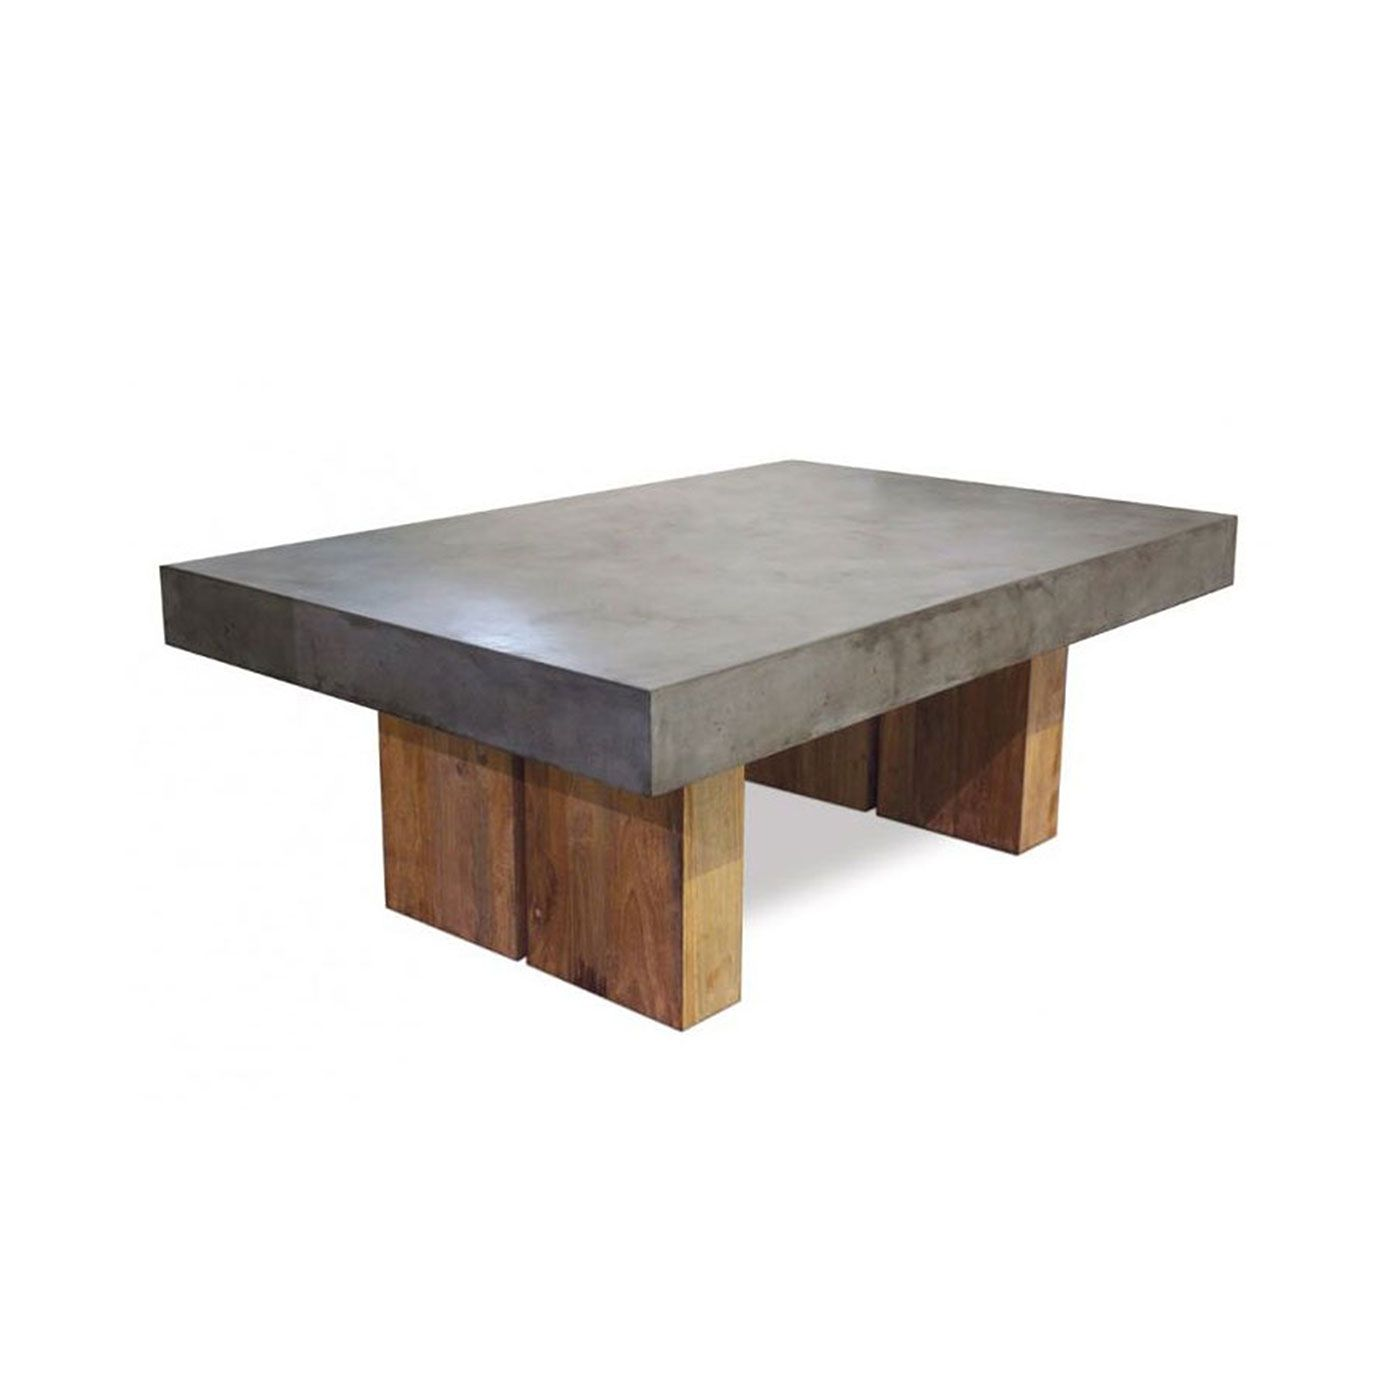 Inspirational Reclaimed Teak And Concrete Dining Table Grey